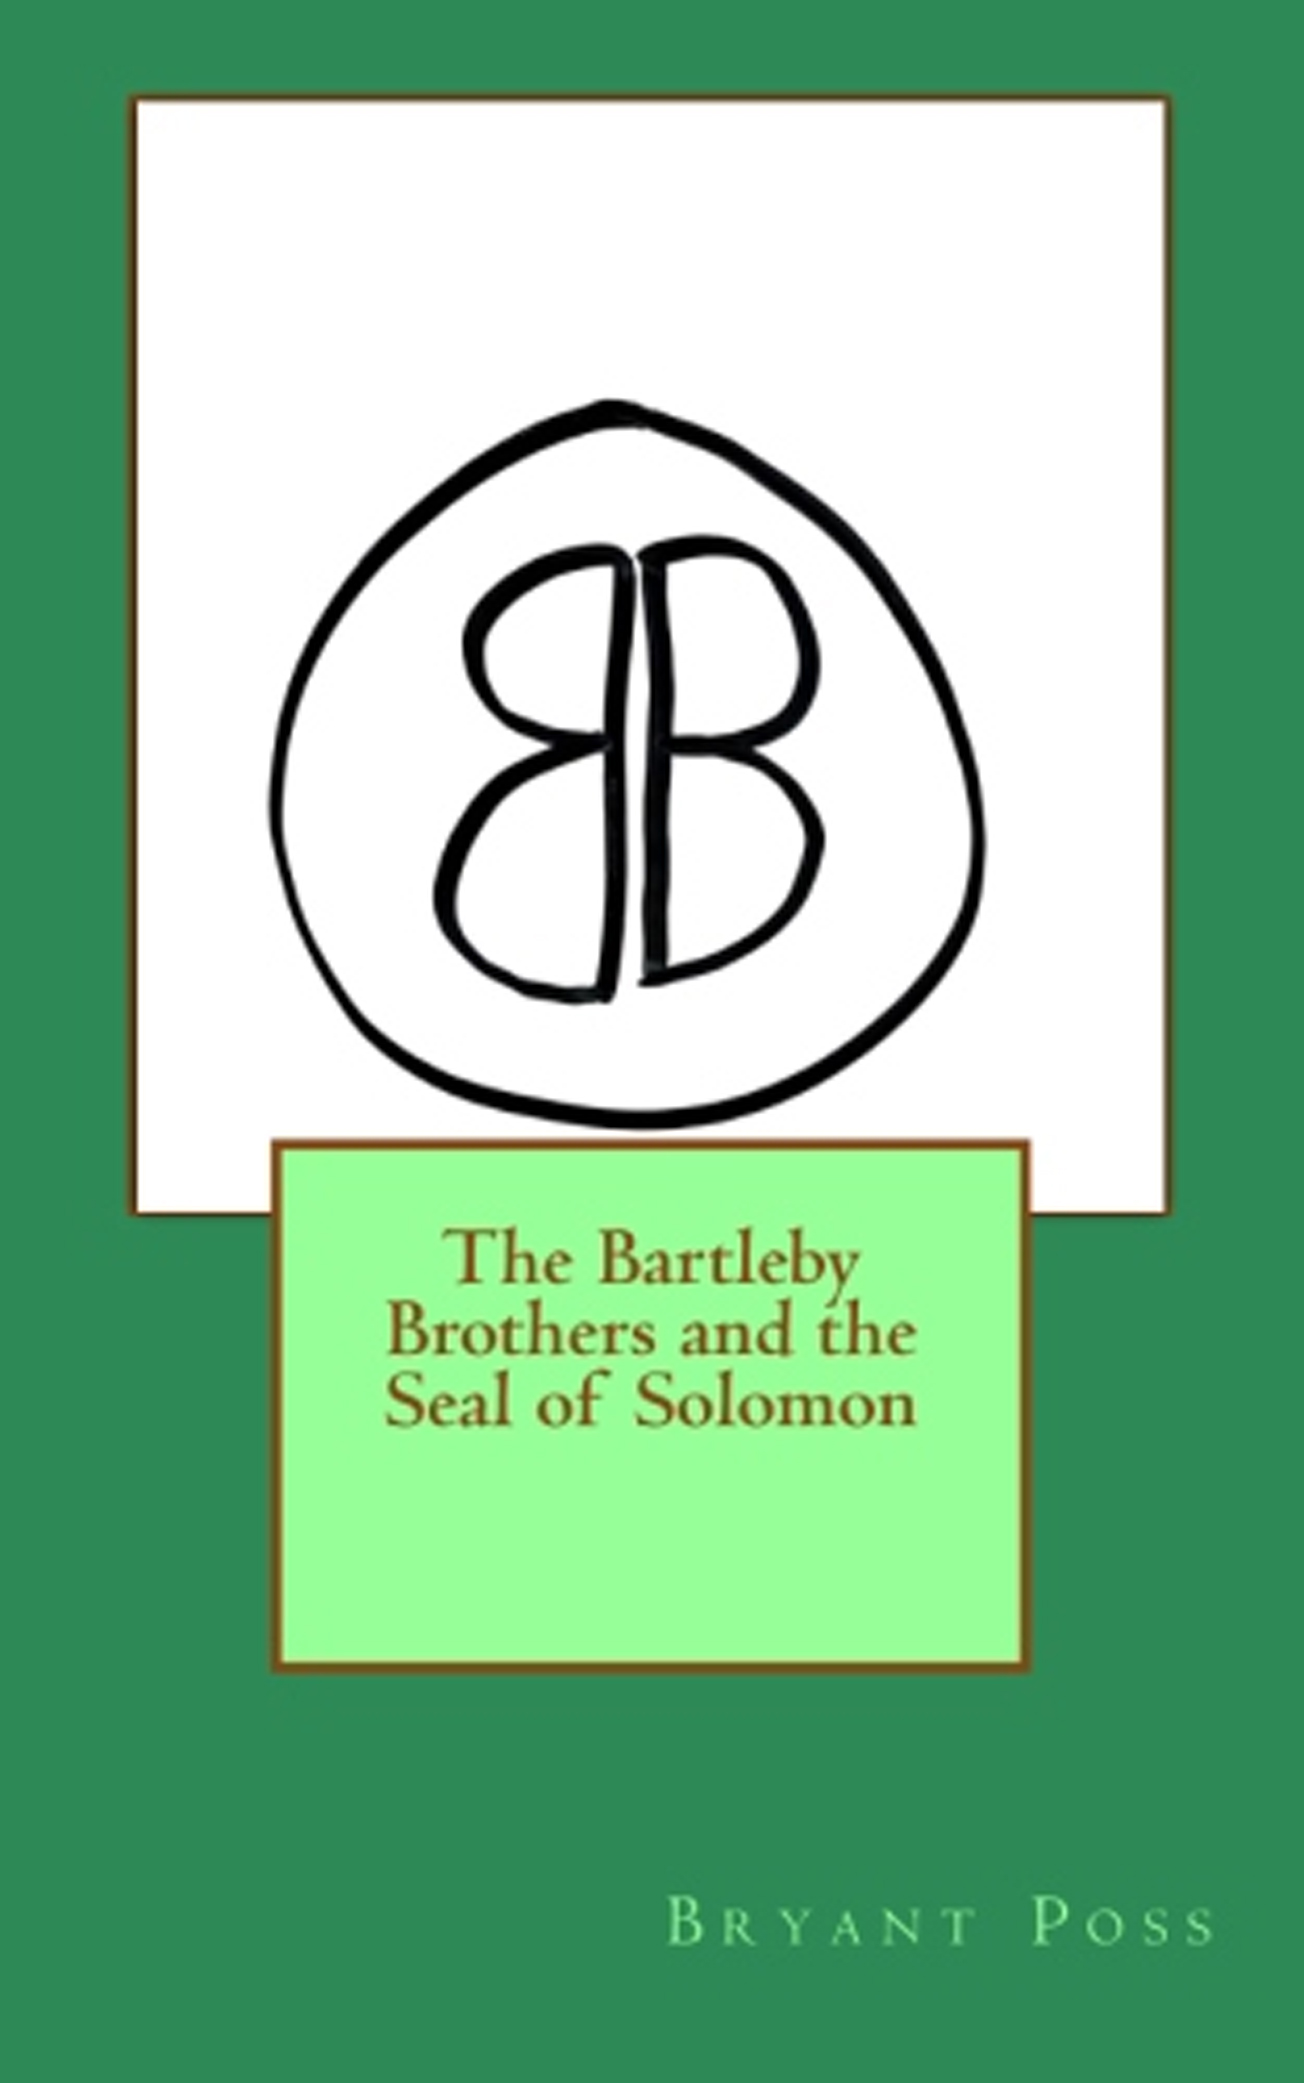 The Bartleby Brothers and the Seal of Solomon By Bryant Poss